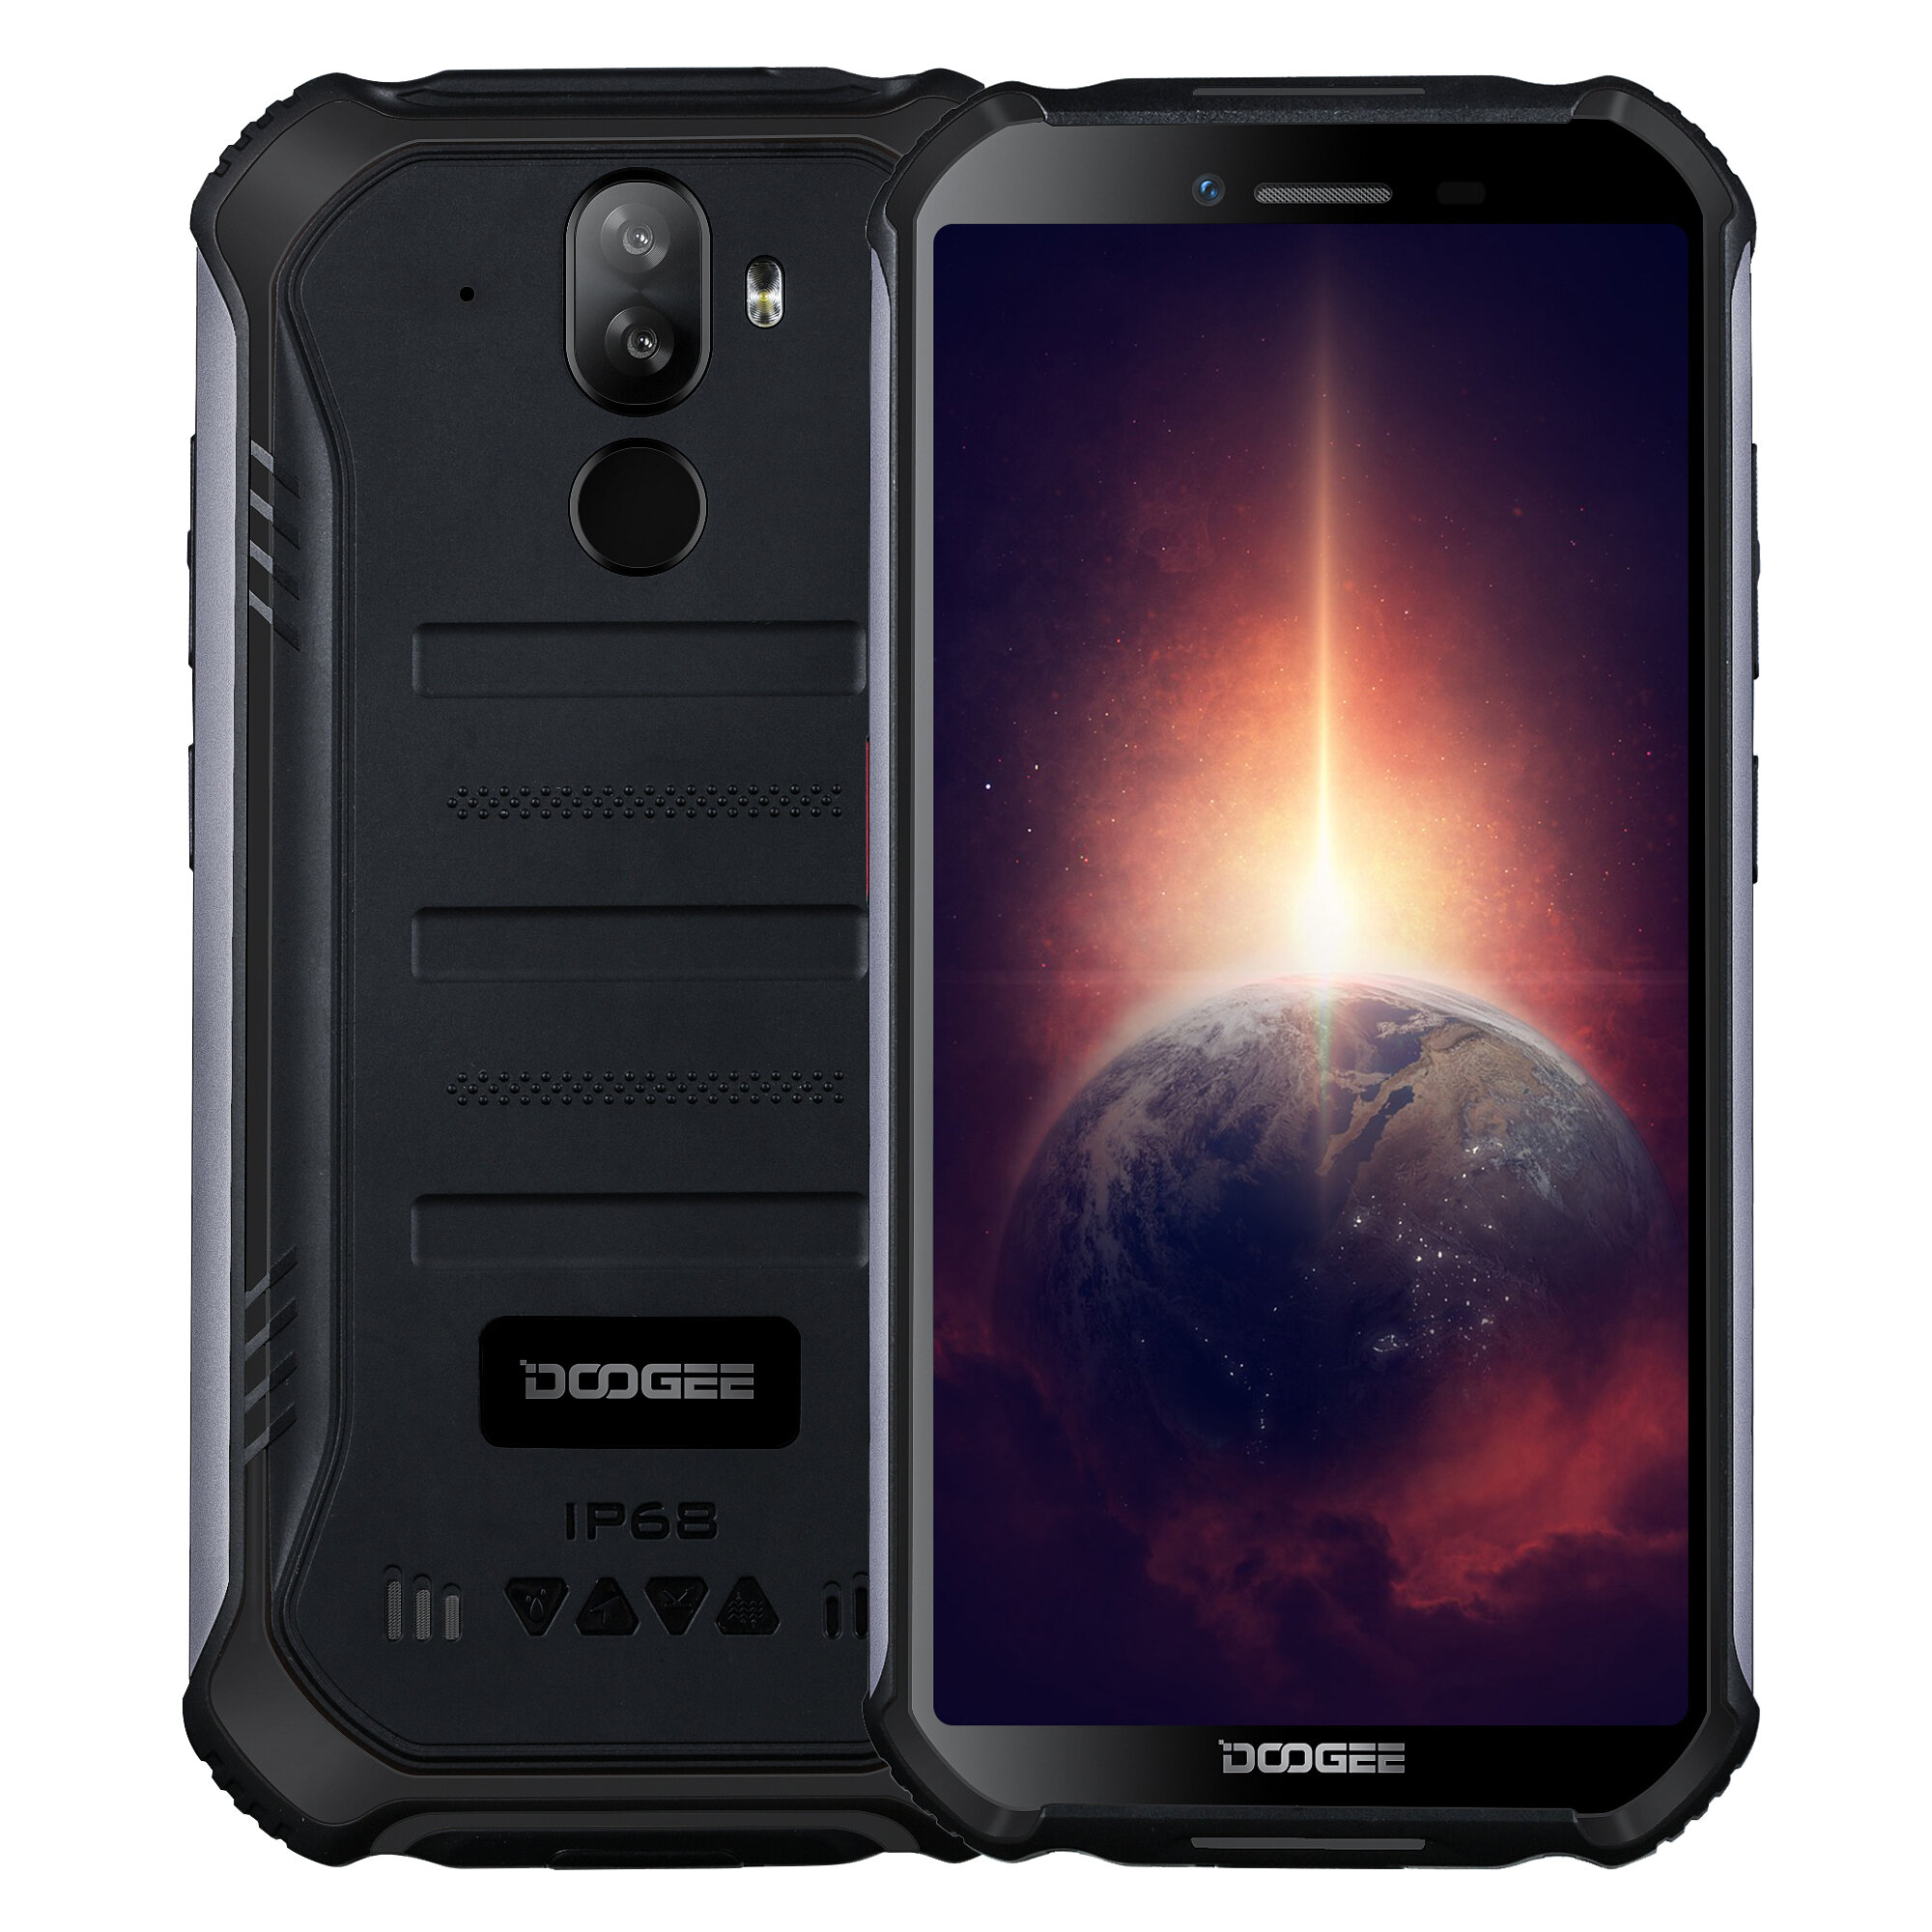 DOOGEE S40 Pro 5.45 inch IP68/IP69K Waterproof NFC Android 10.0 4650mAh 13MP Dual Rear Camera 4GB 64GB Helio A25 4G Smartphone - Black